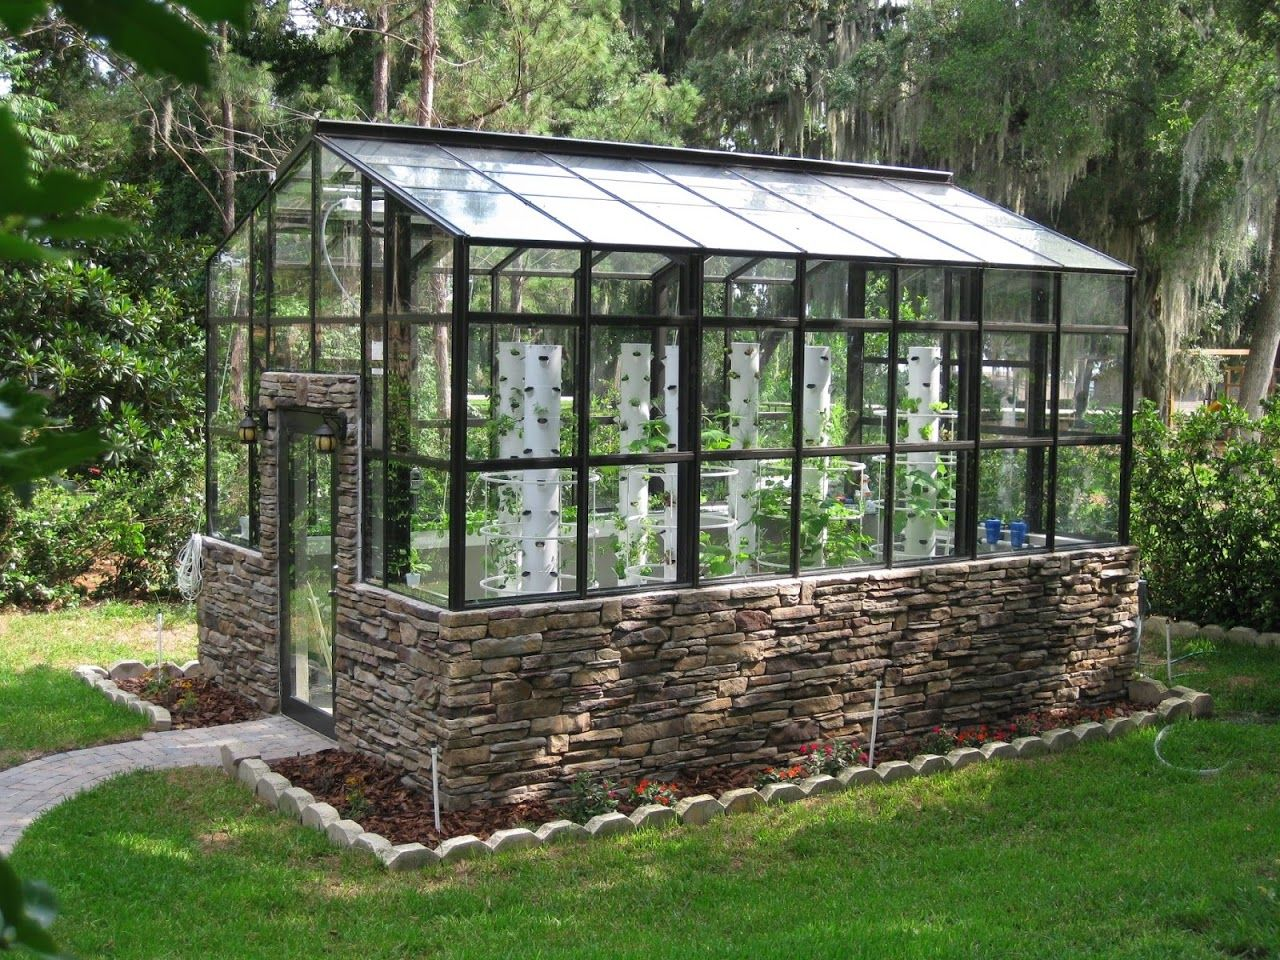 Future Growing Tower Gardens In Small Urban Greenhouse Modern Greenhouses Tower Garden Urban Garden